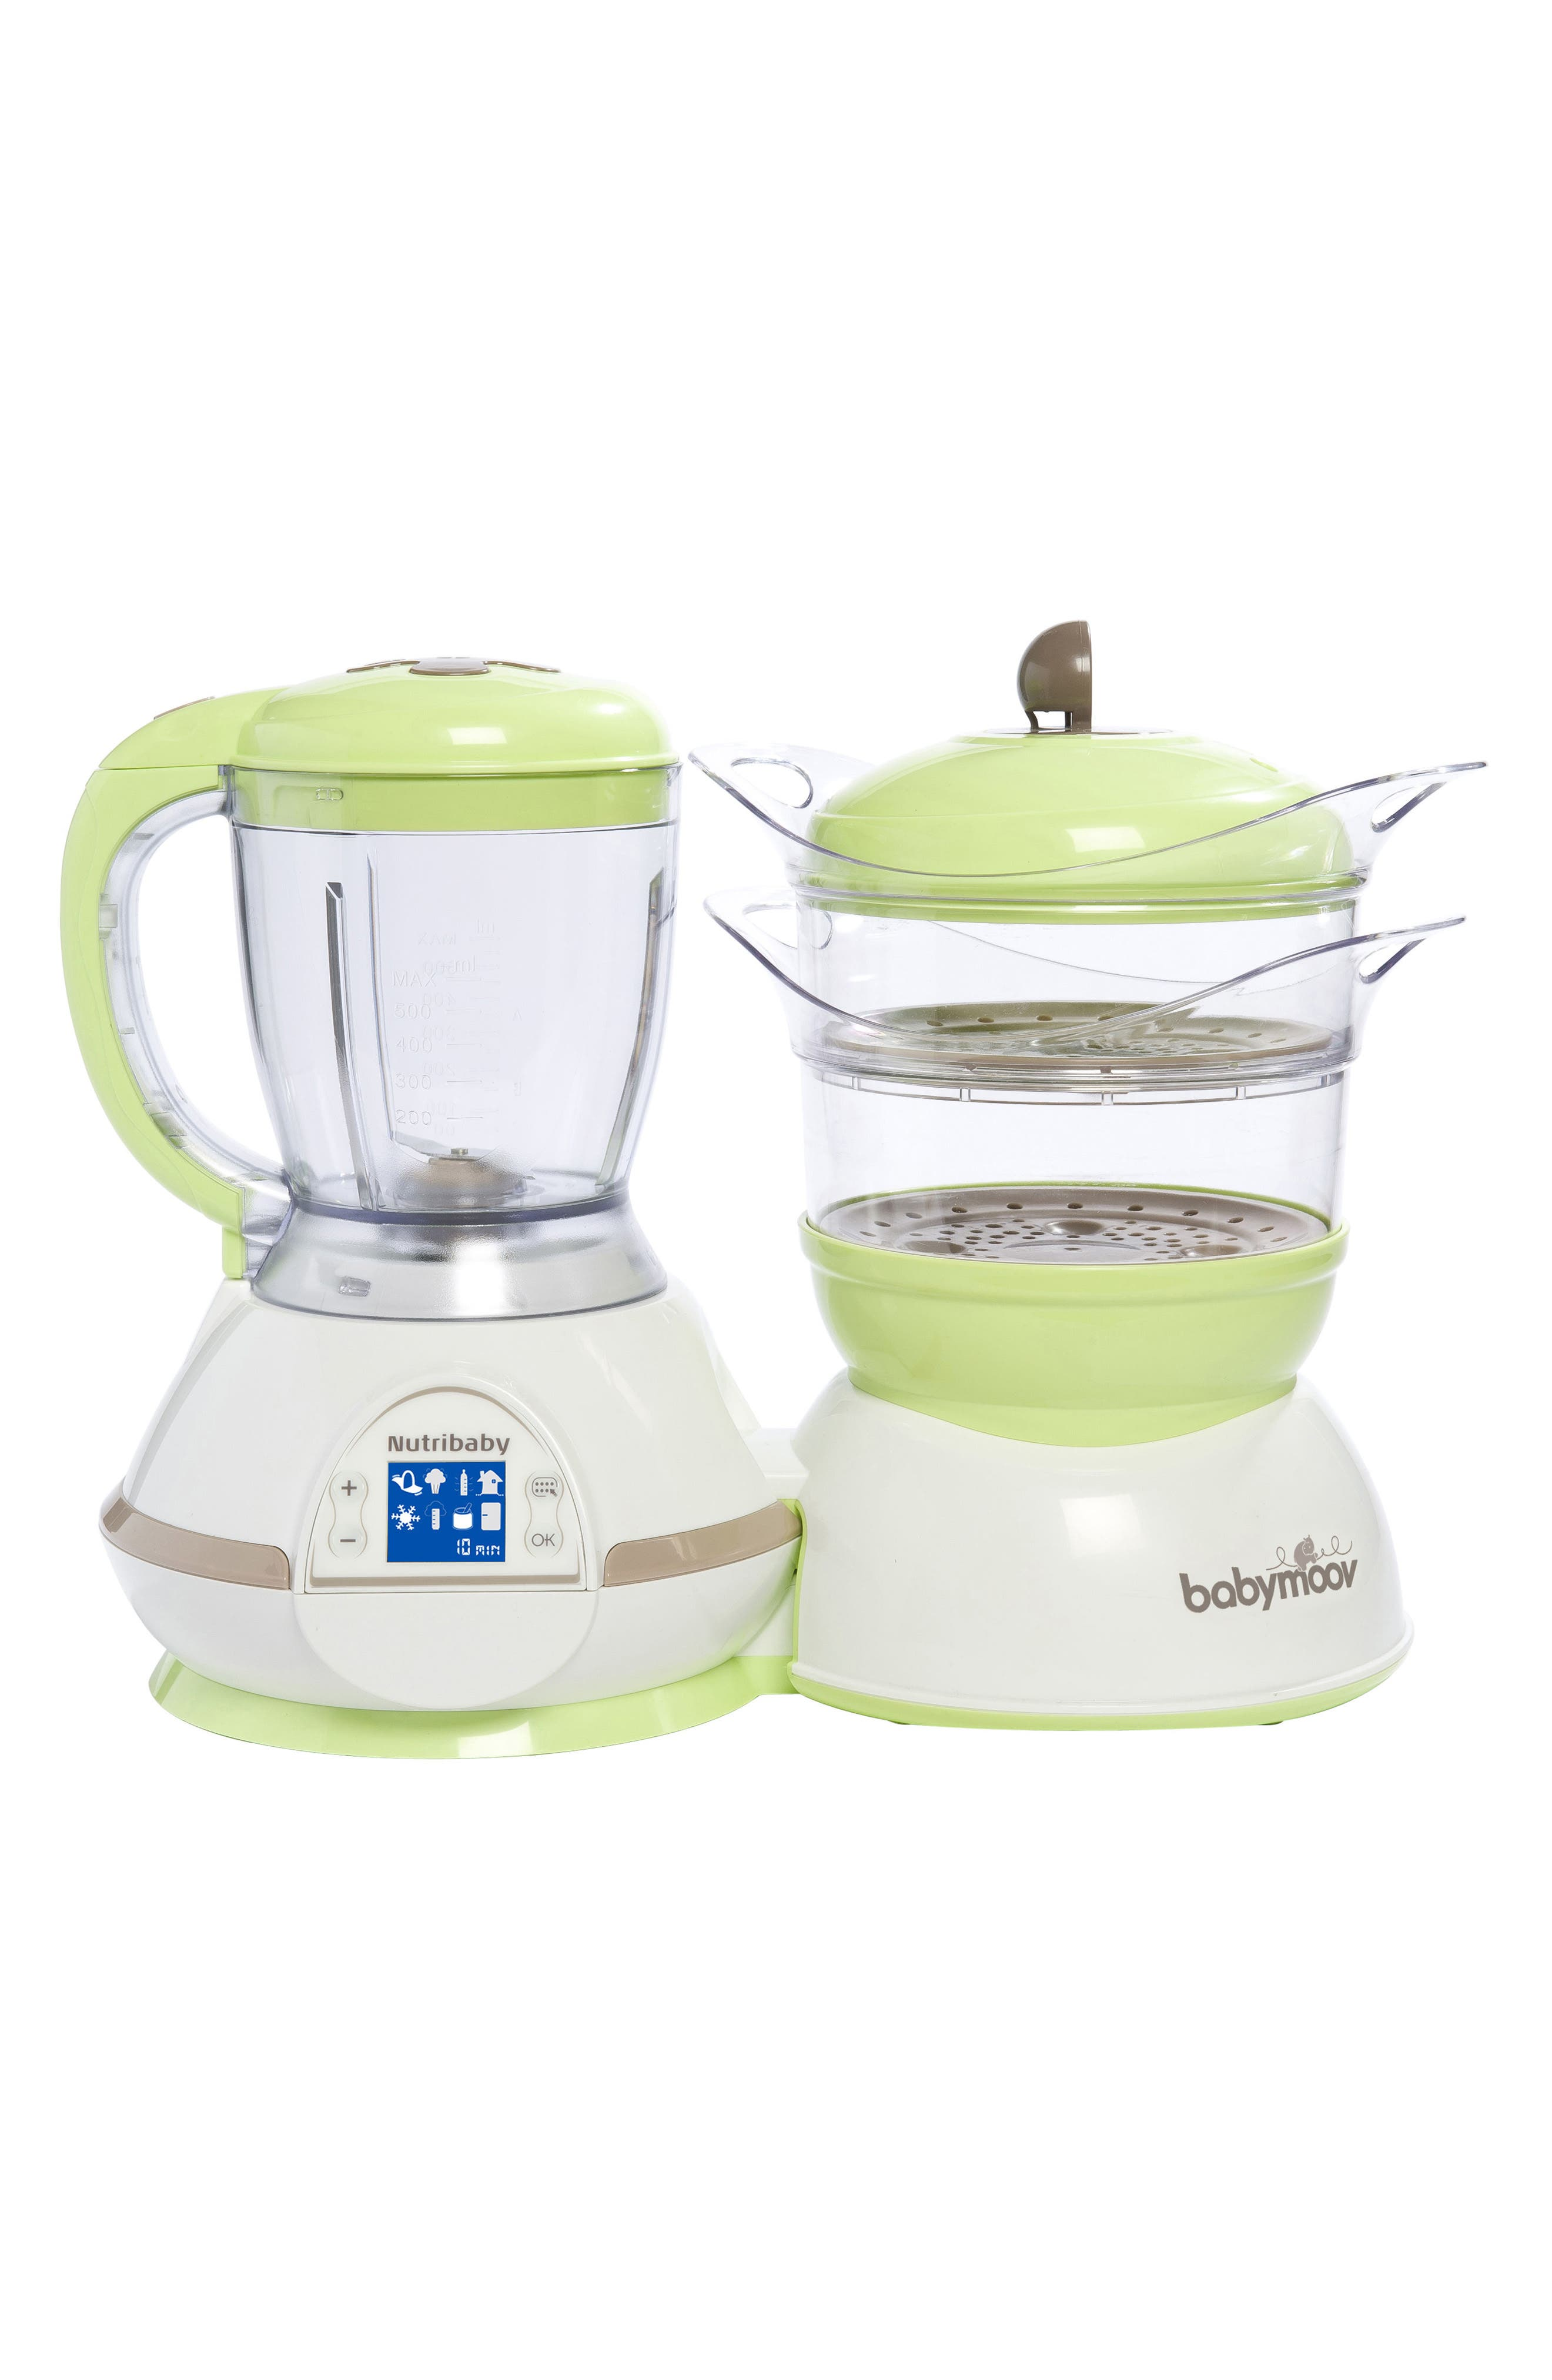 Nutribaby 5-In-1 Baby Food Maker,                             Main thumbnail 1, color,                             ZEN